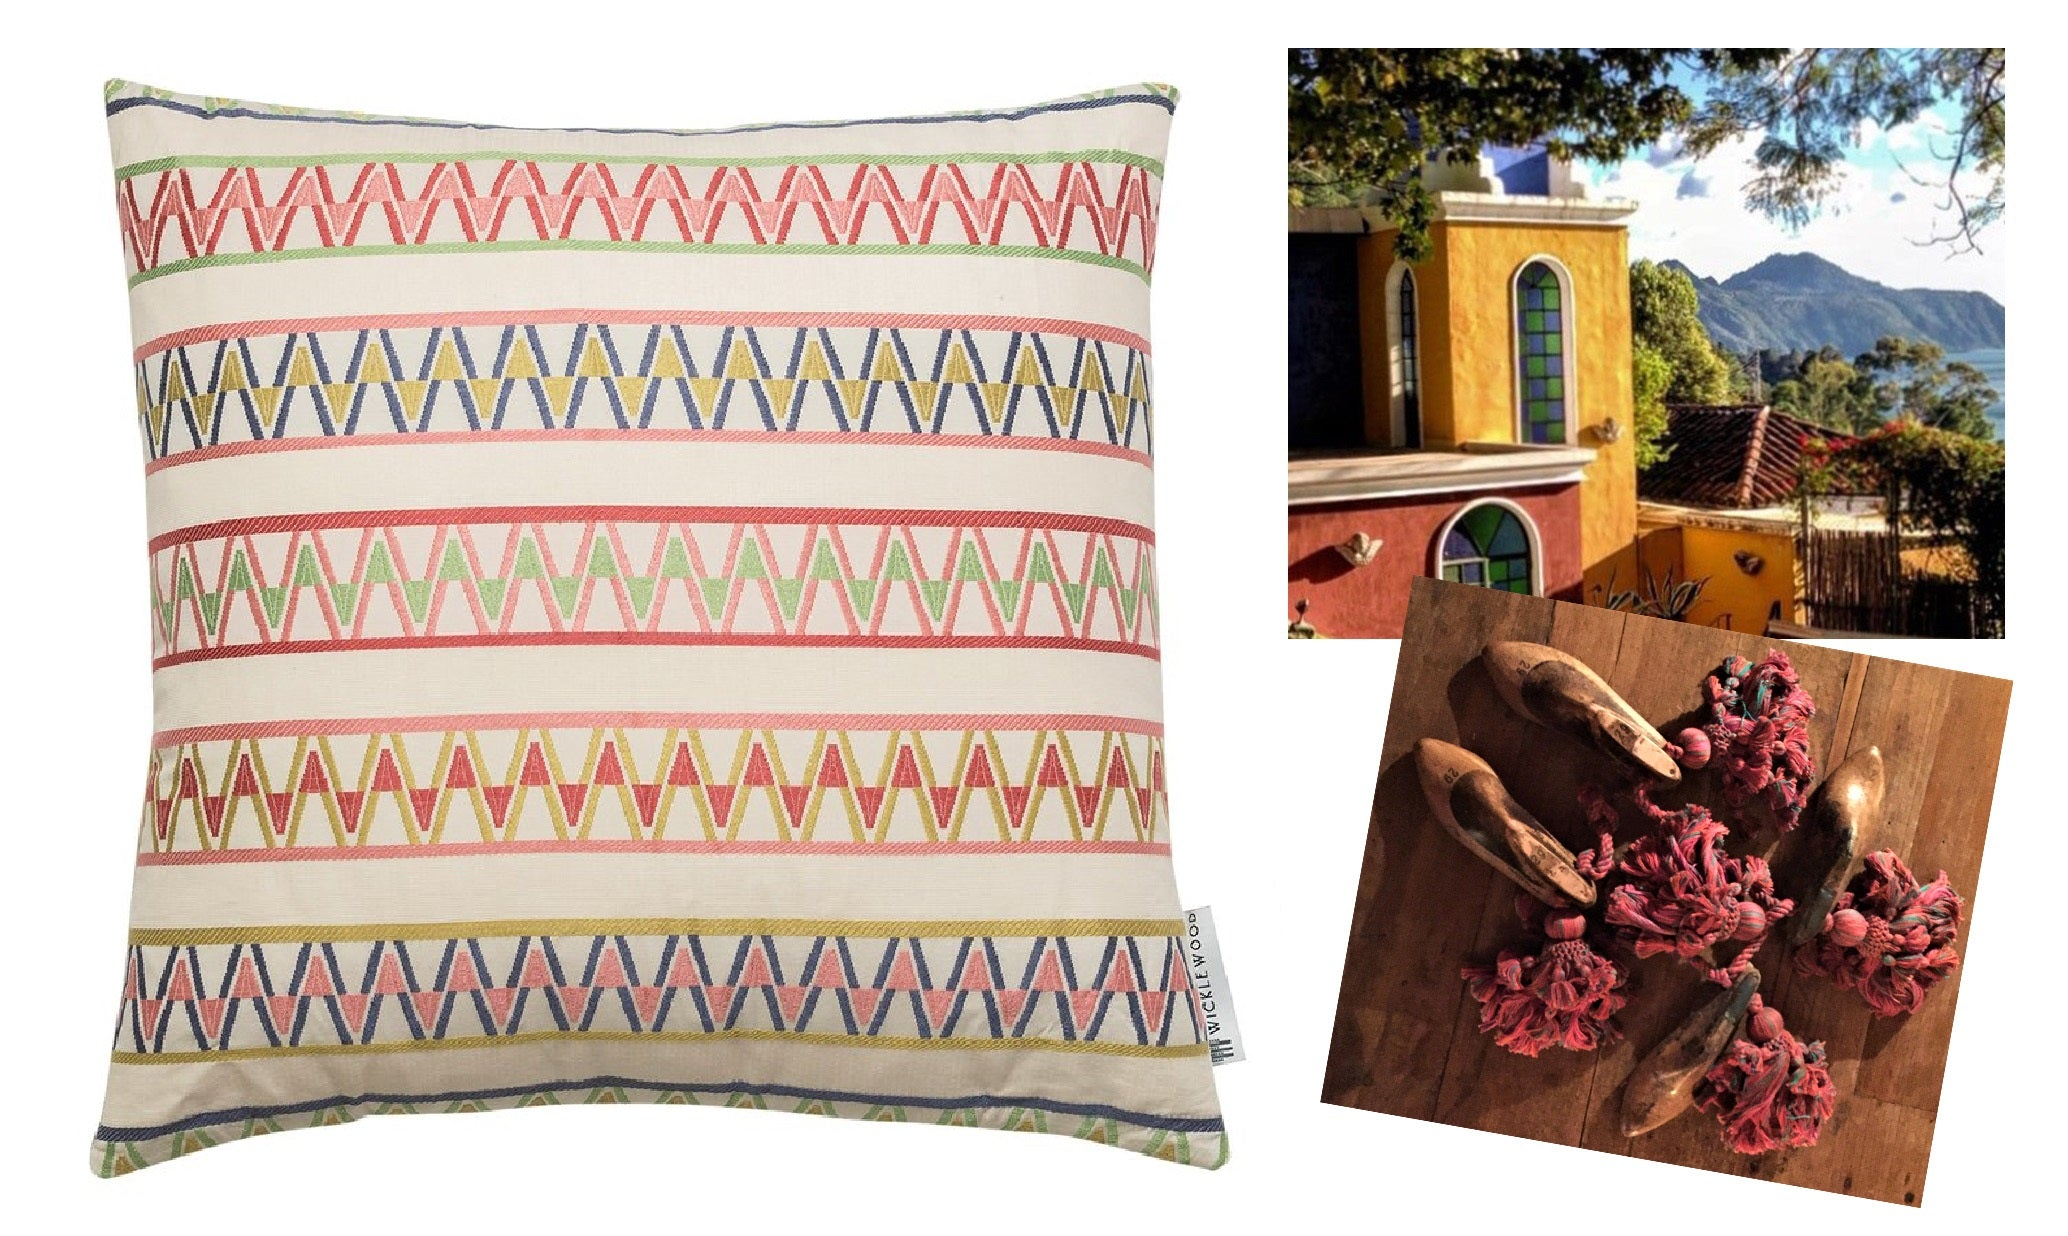 Our Palopo cushion was inspired by Casa Palopo, a beautiful hotel in Guatemala wih stunning views of Lake Atitlan